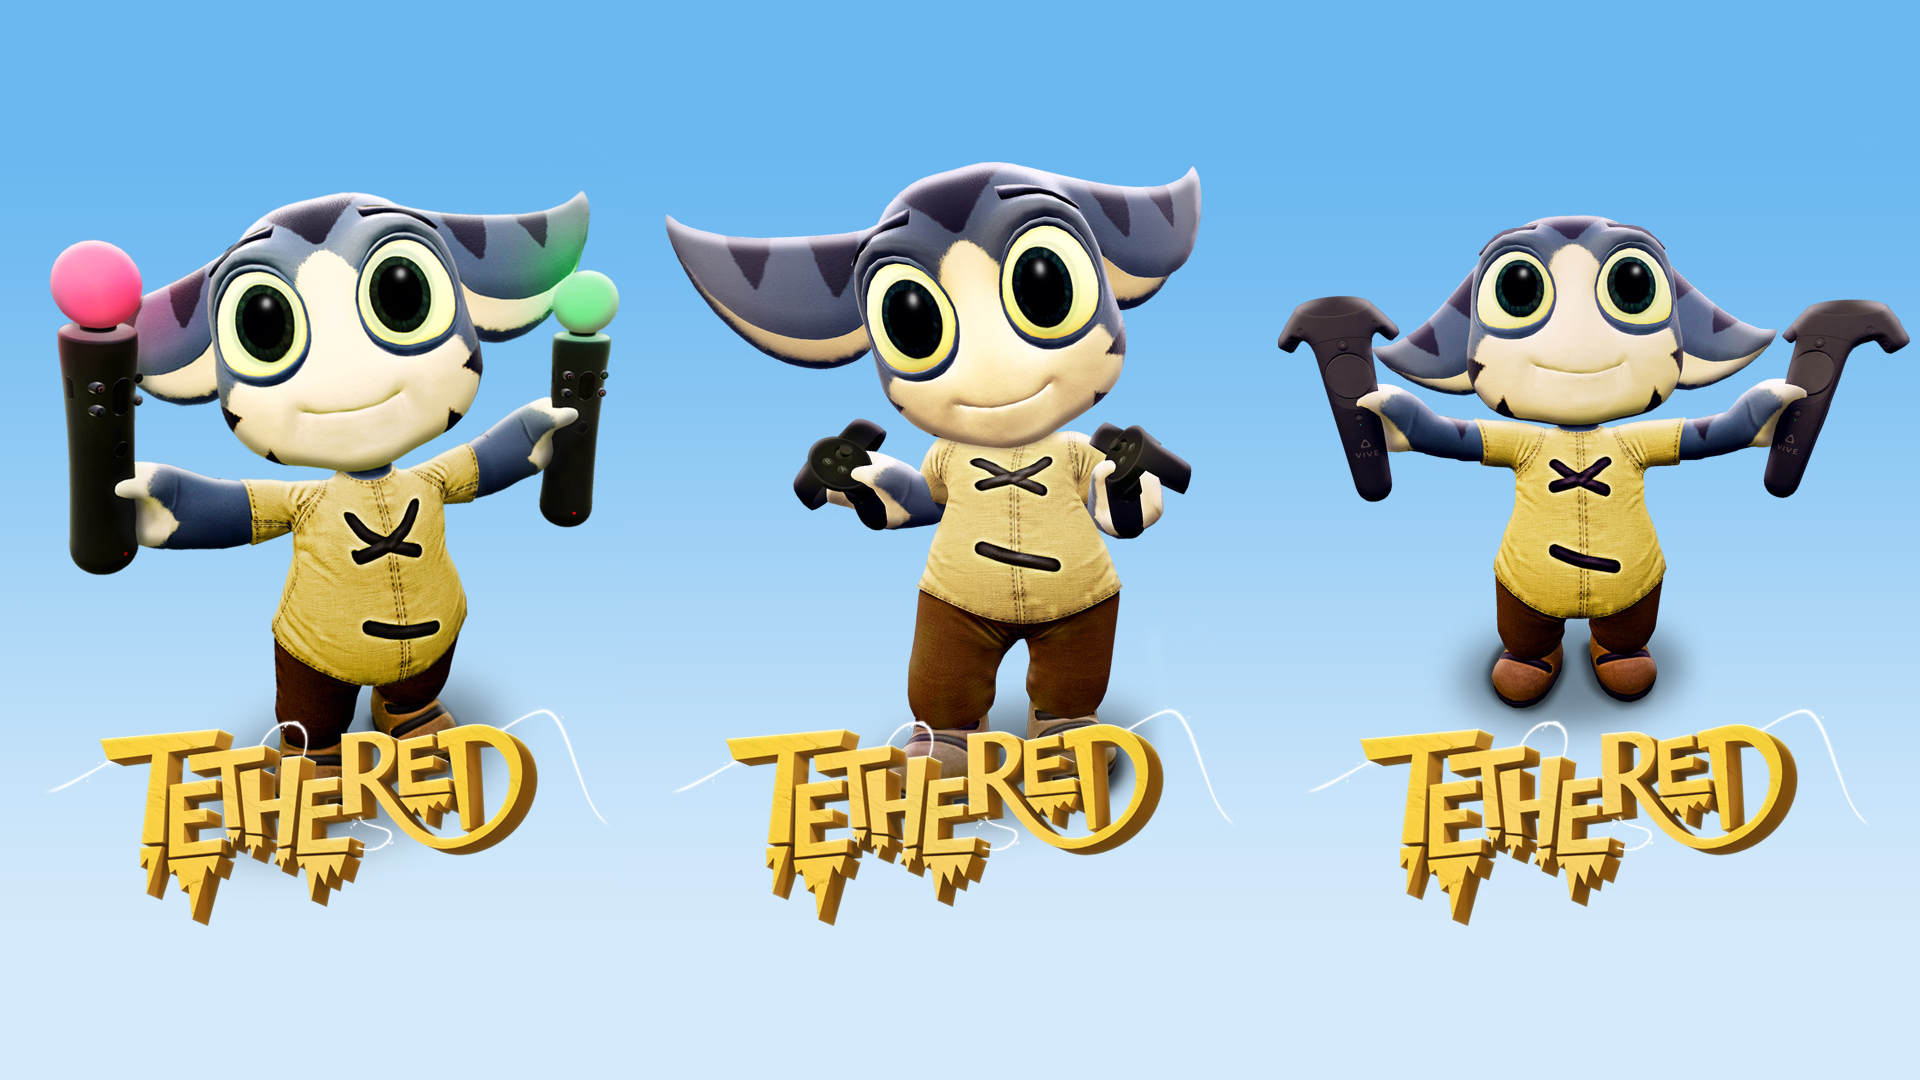 Tethered Peeps, enhanced for marketing material